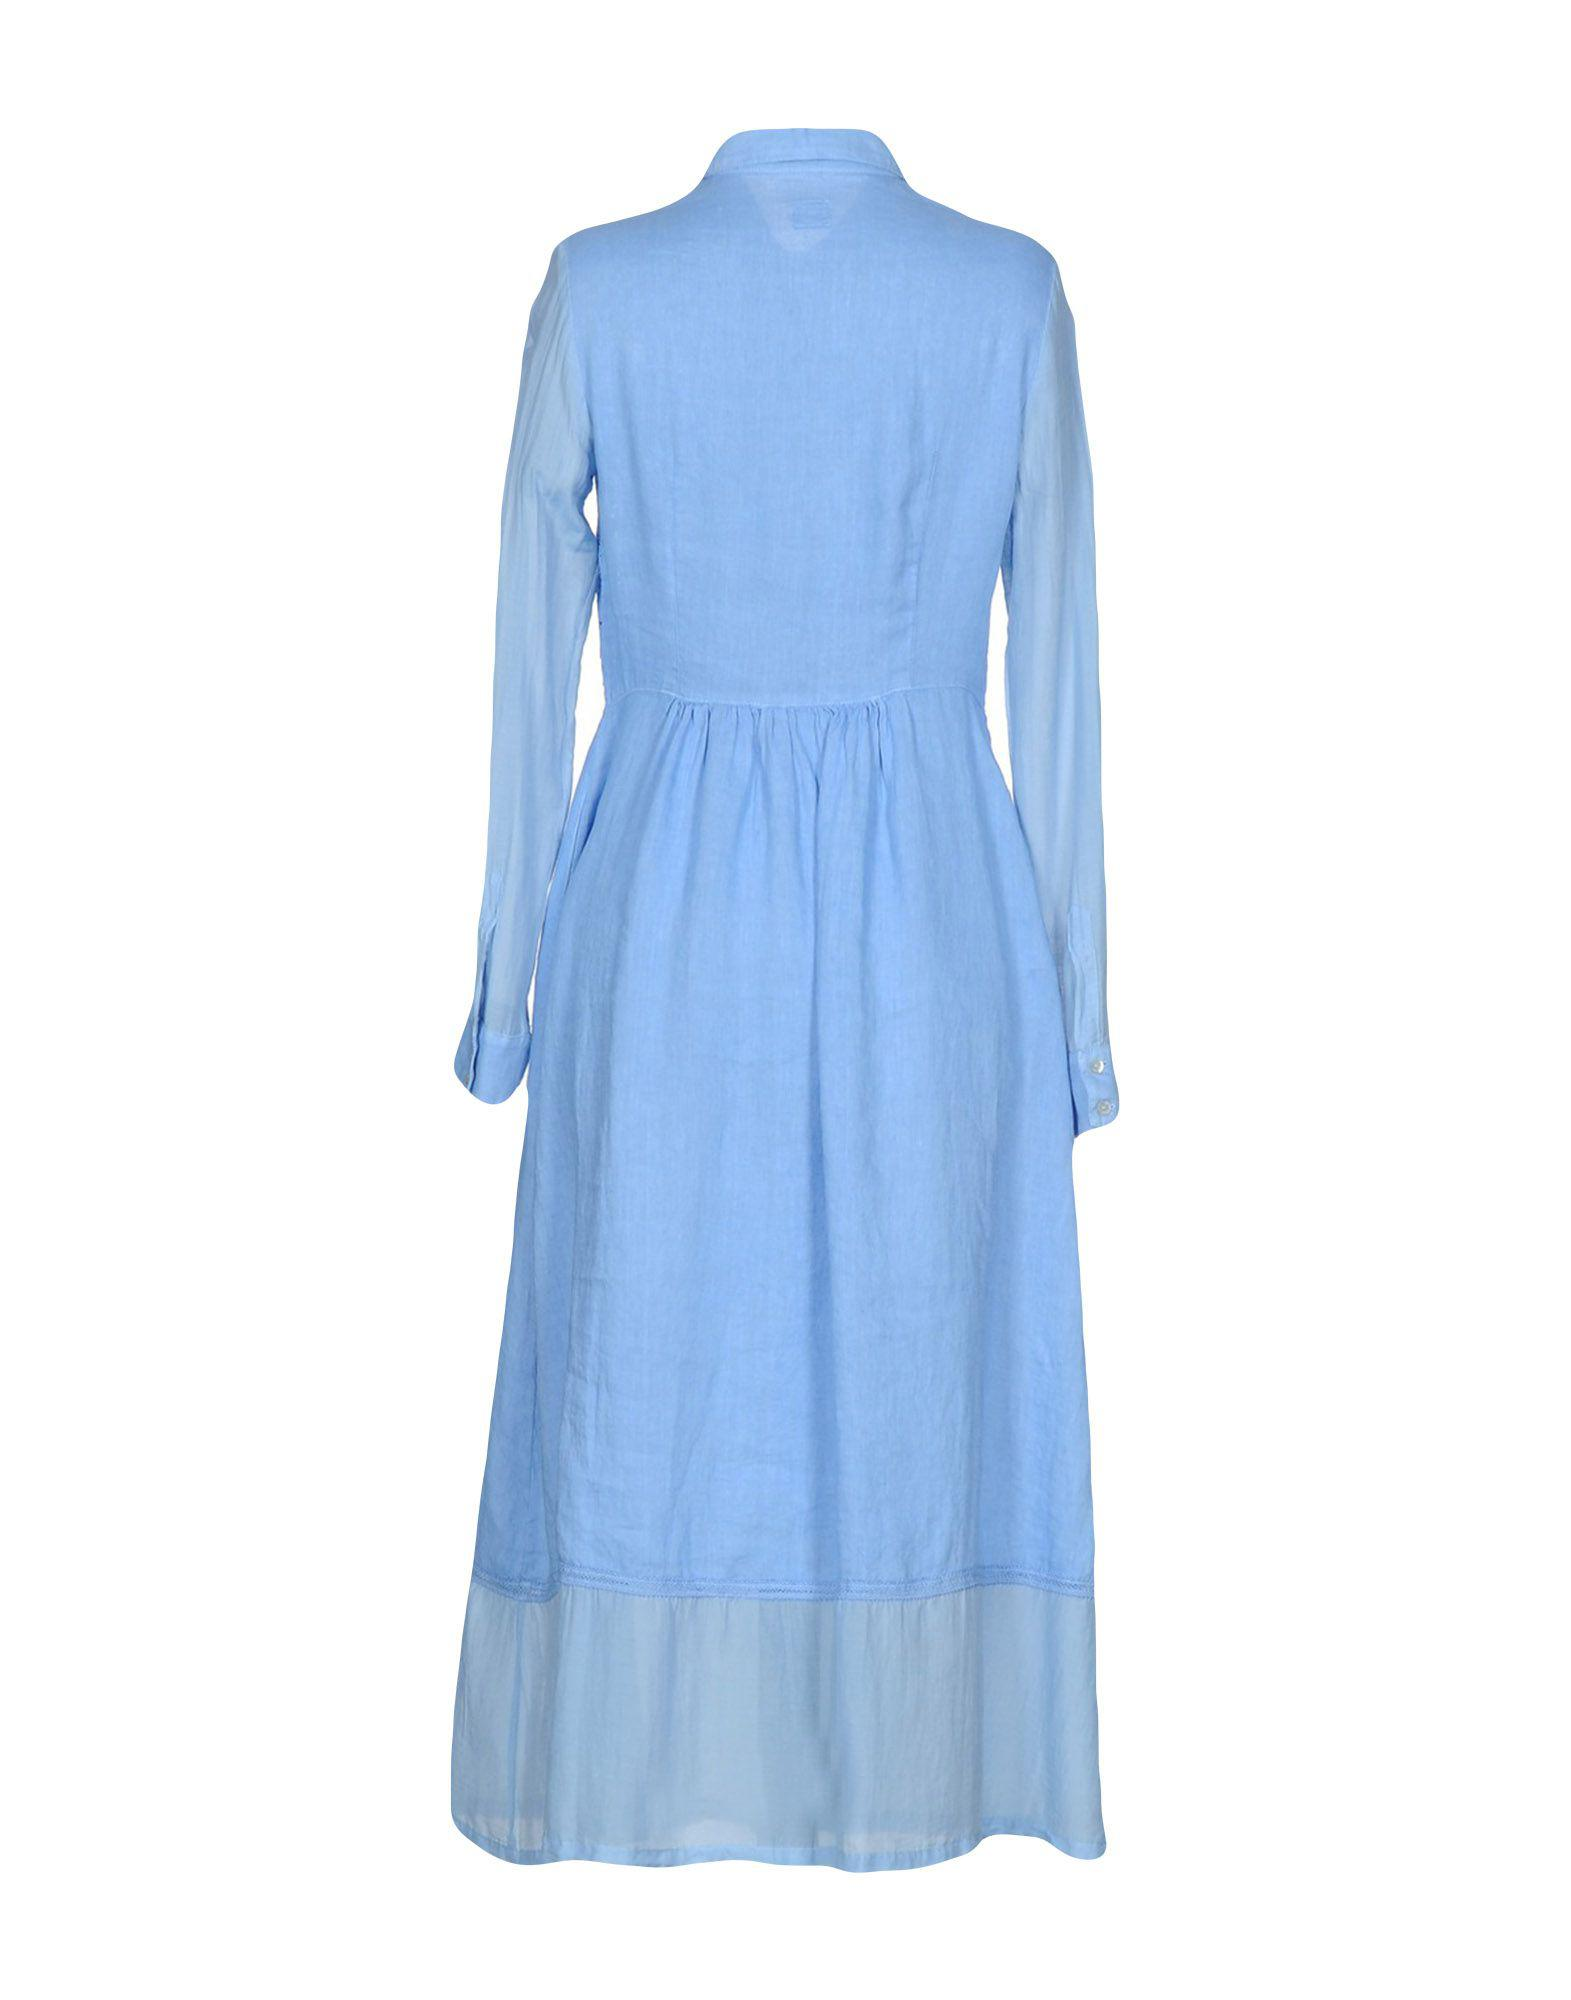 9ee01e1ebc Lyst - 120% Lino Long Dress in Blue